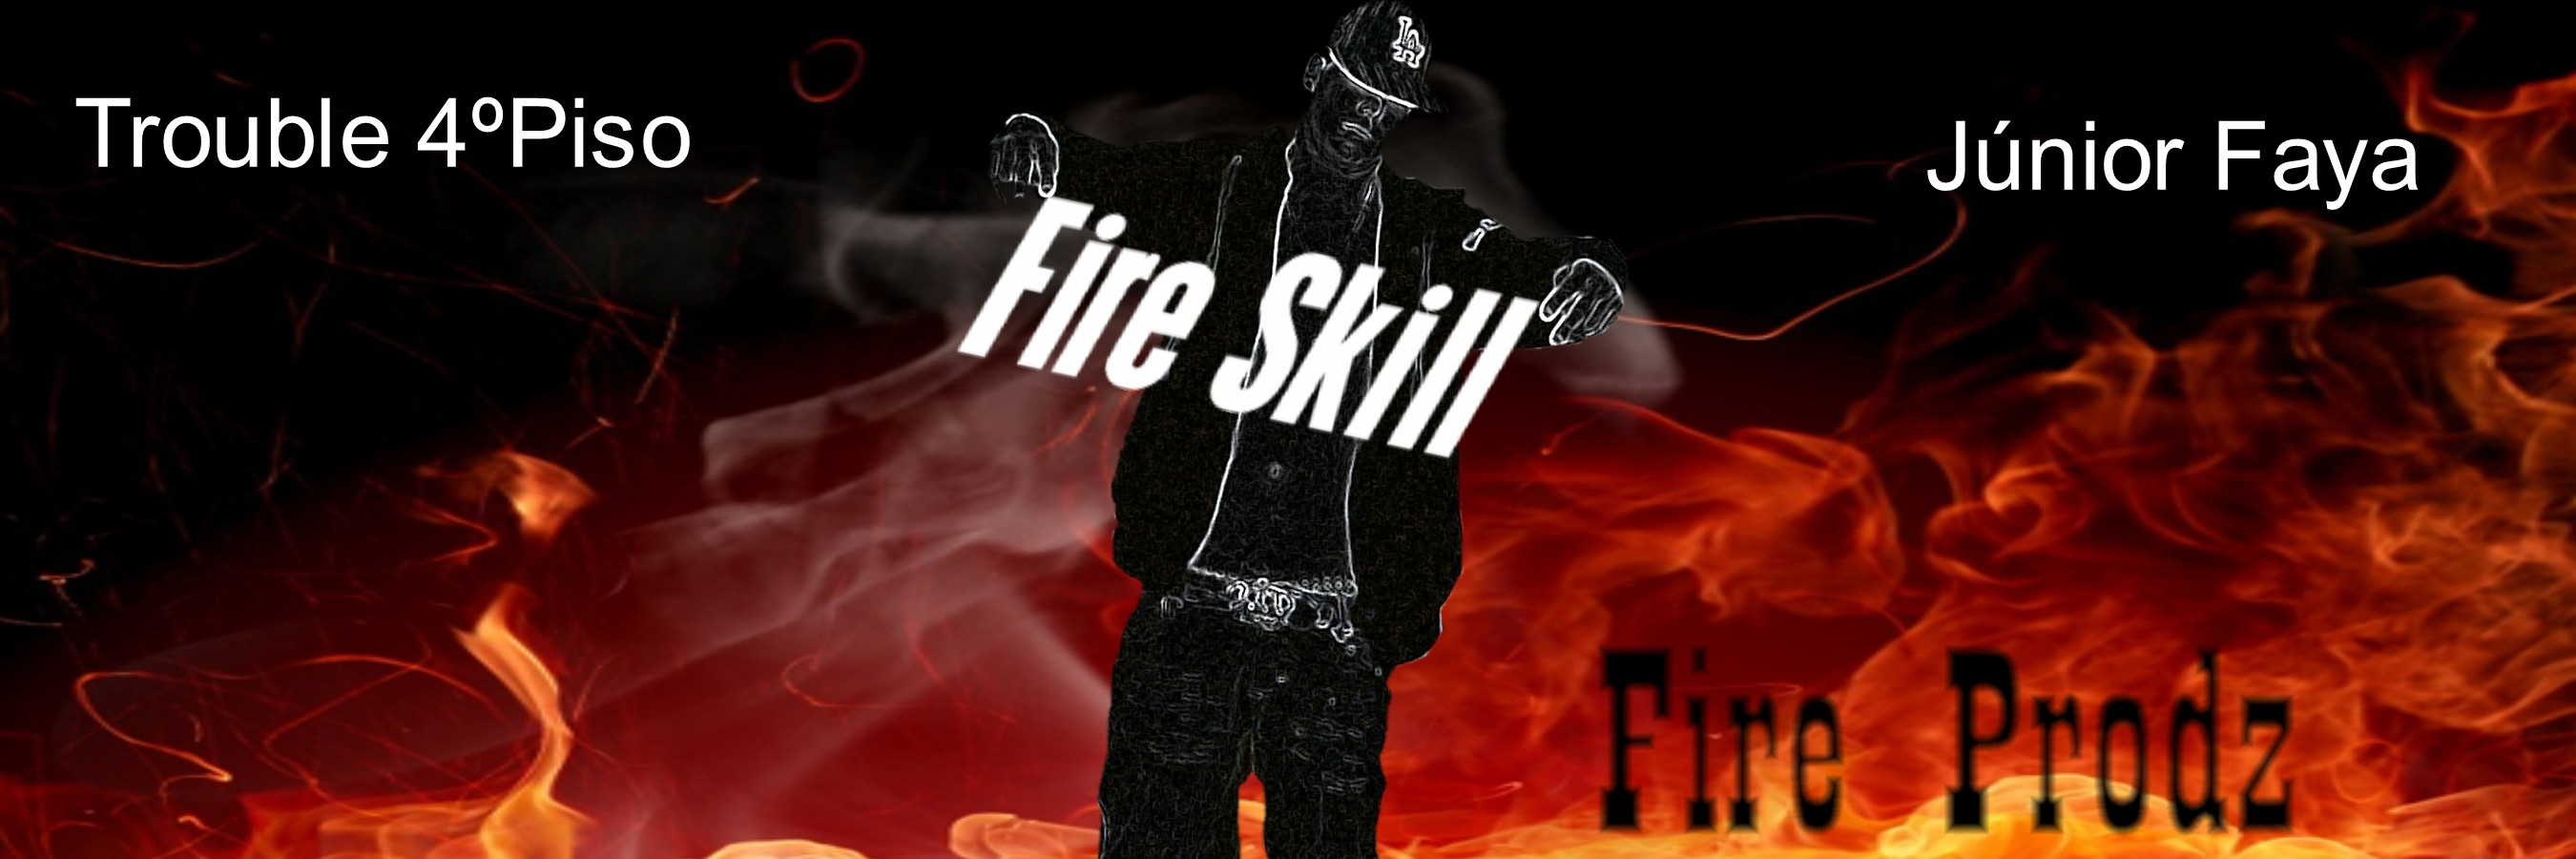 FireSkill Junior Faya